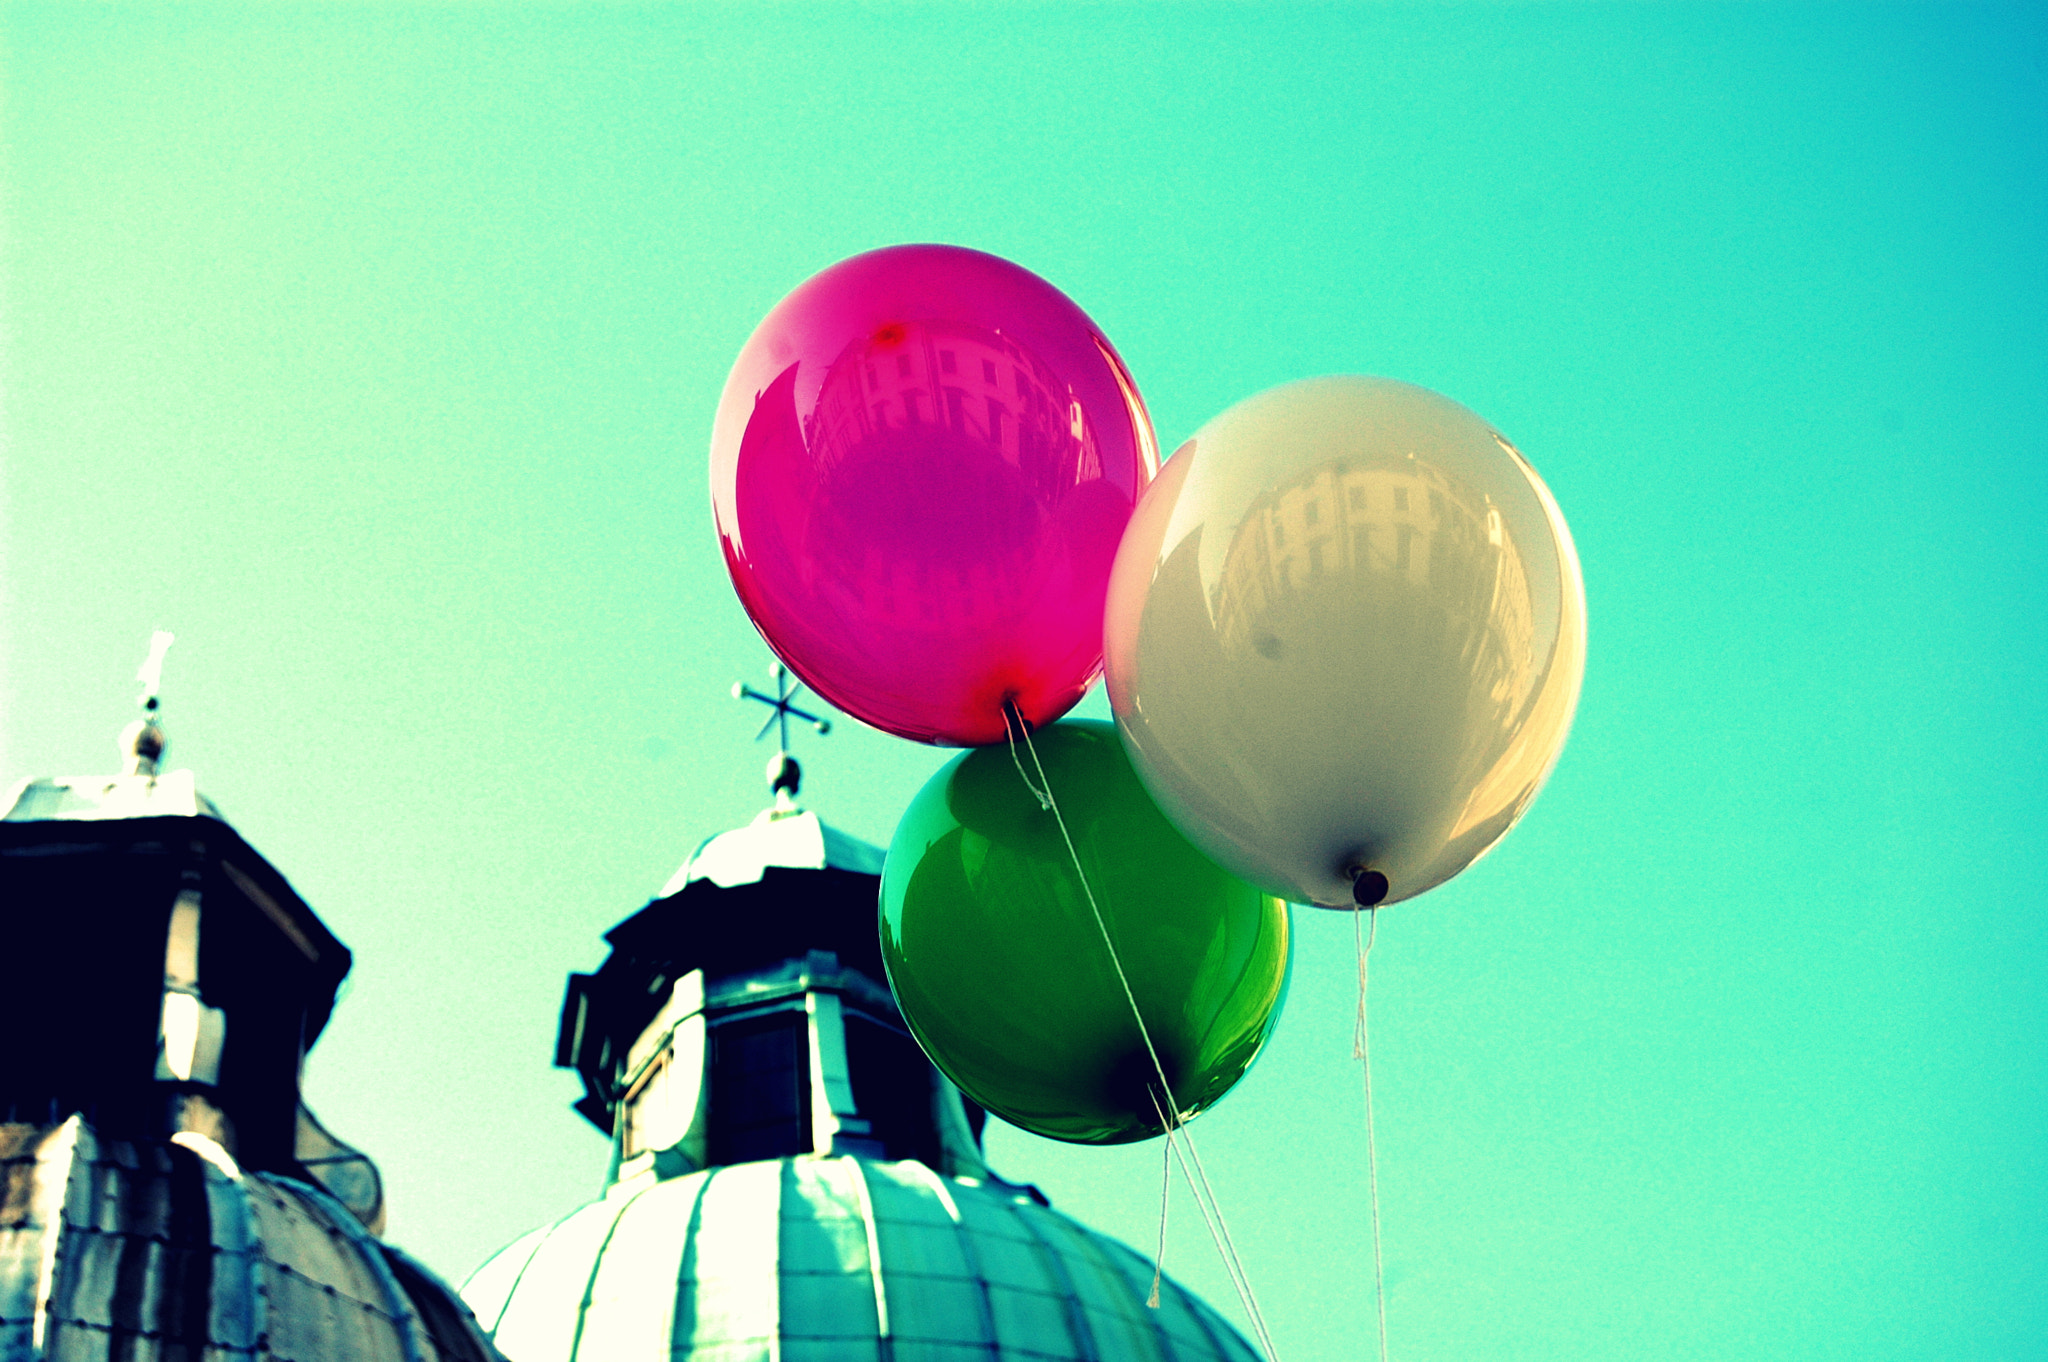 Photograph Coloured balloons in the blue sky by Sushila C. on 500px